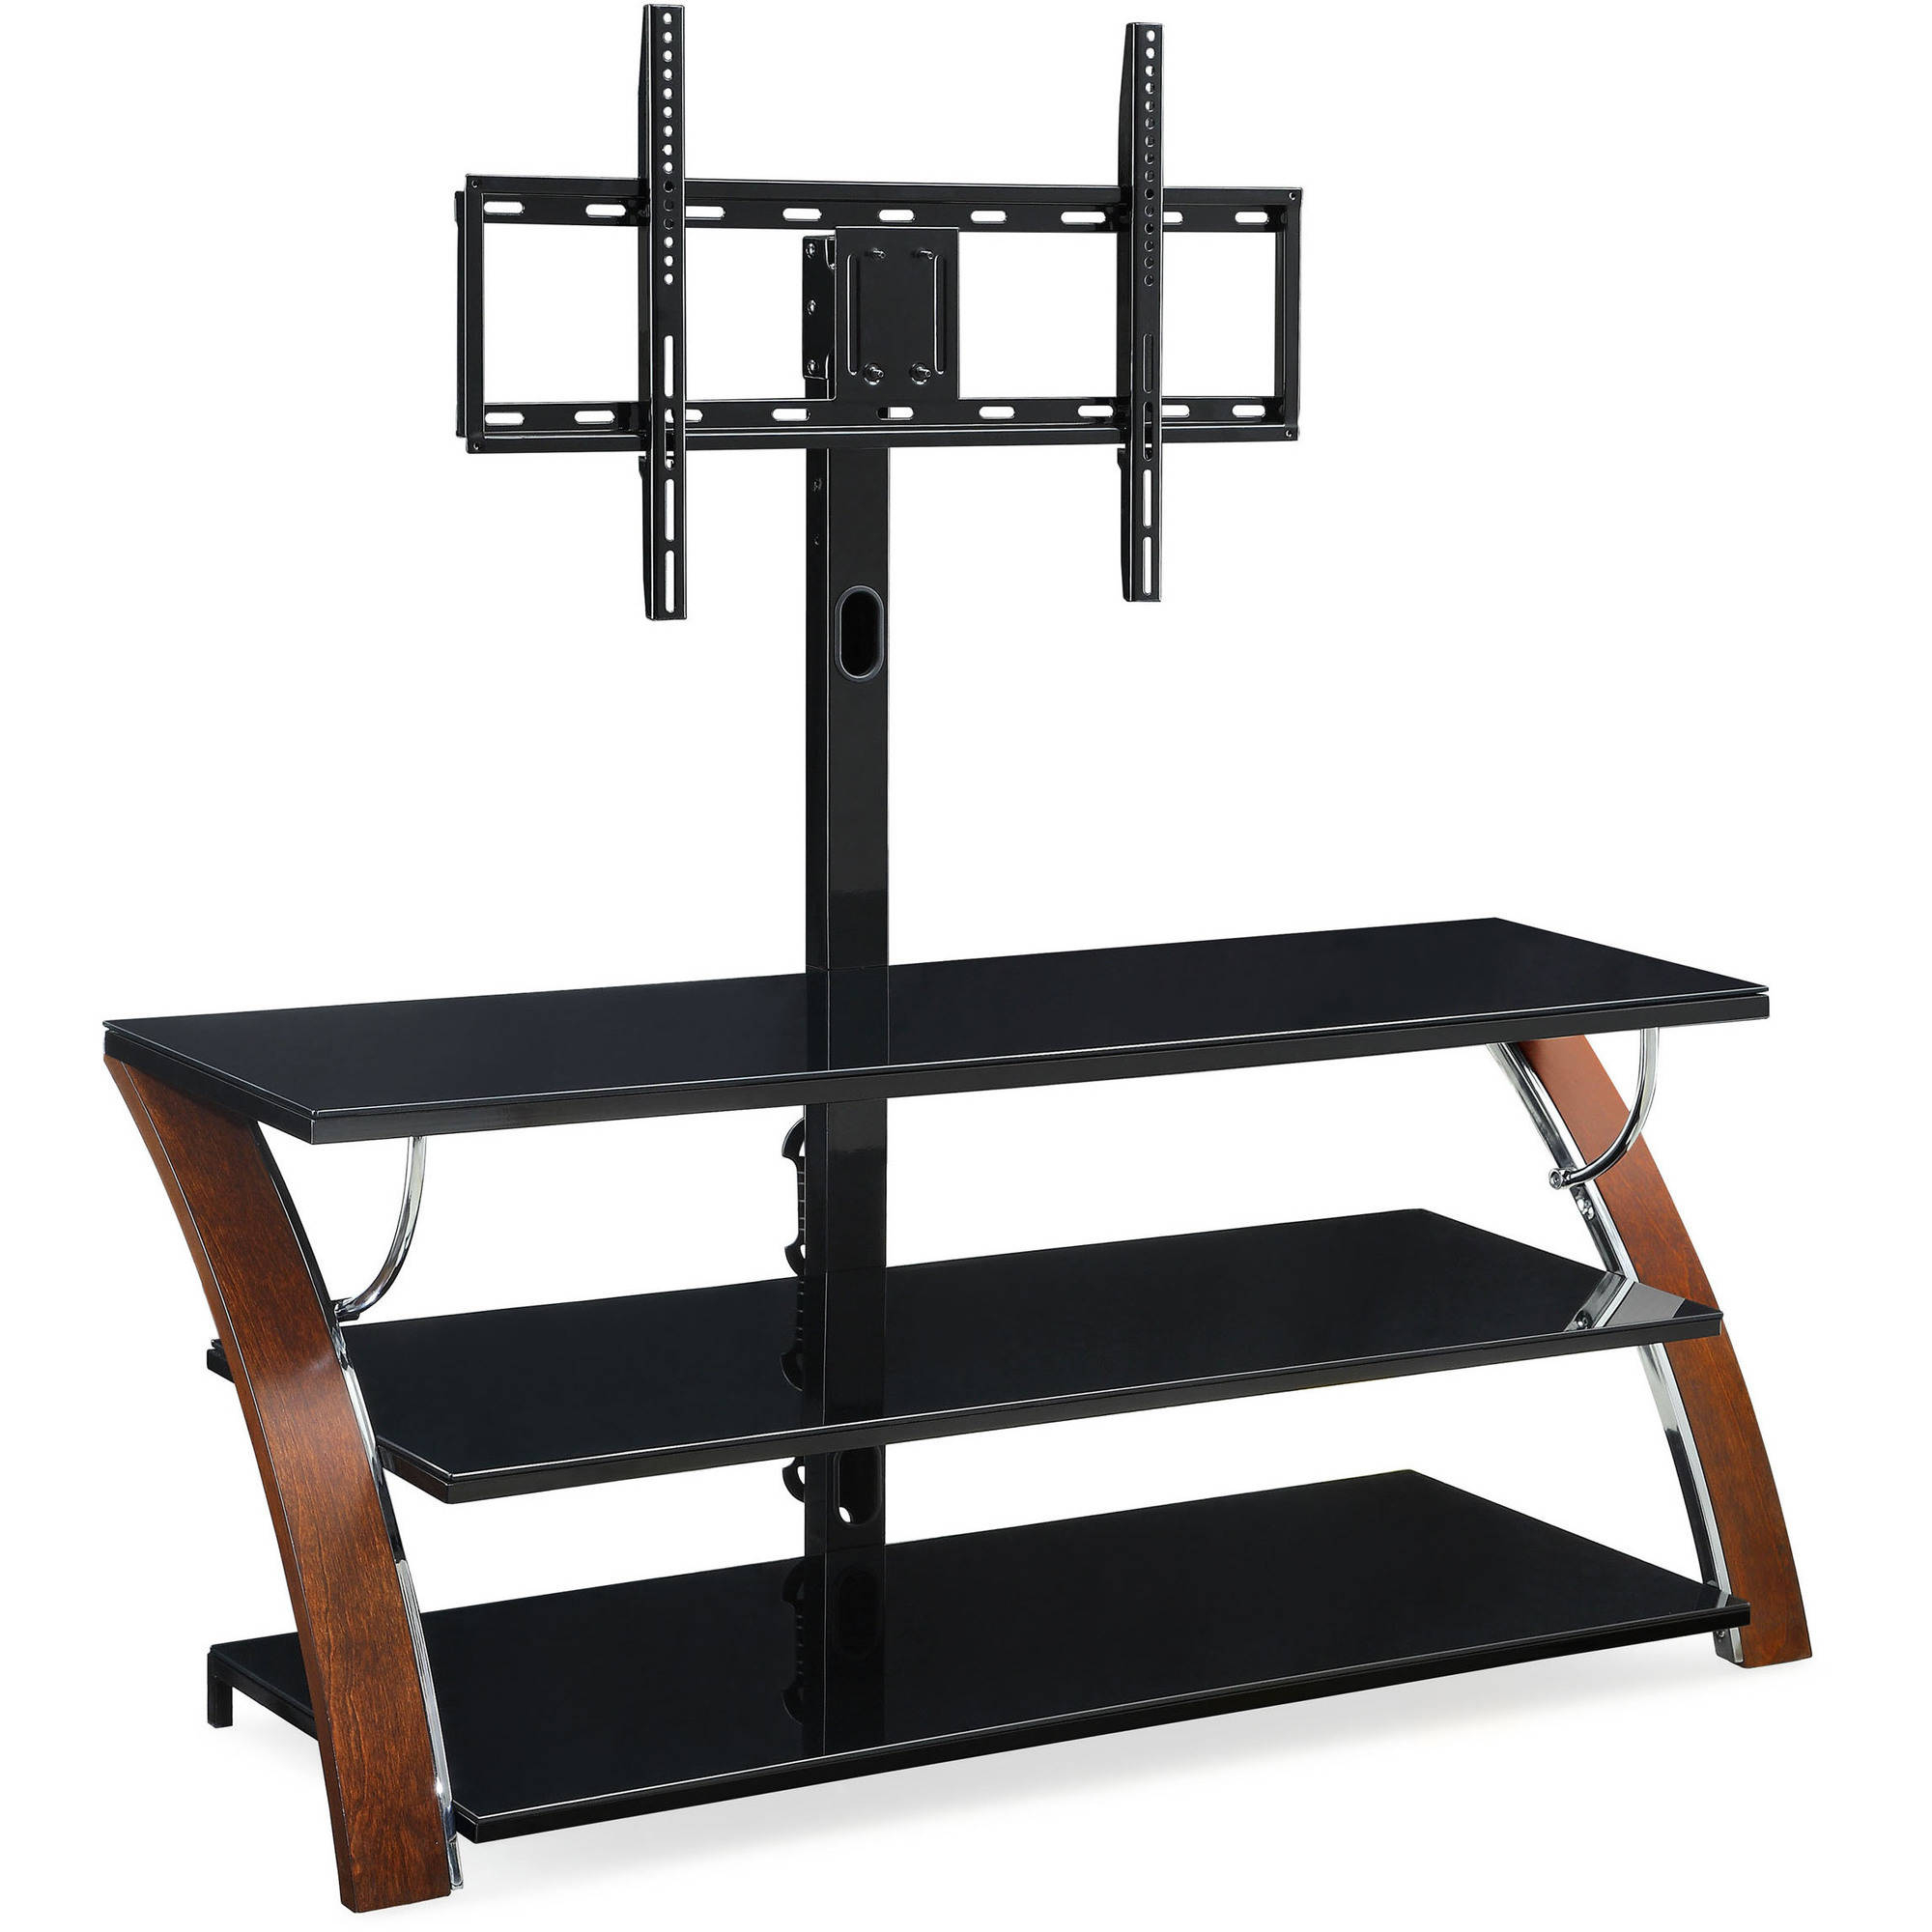 Tv Stand With Mount Swivel Fitueyes Universal Floor For Flat Panel For Favorite Swivel Tv Stands With Mount (View 17 of 20)